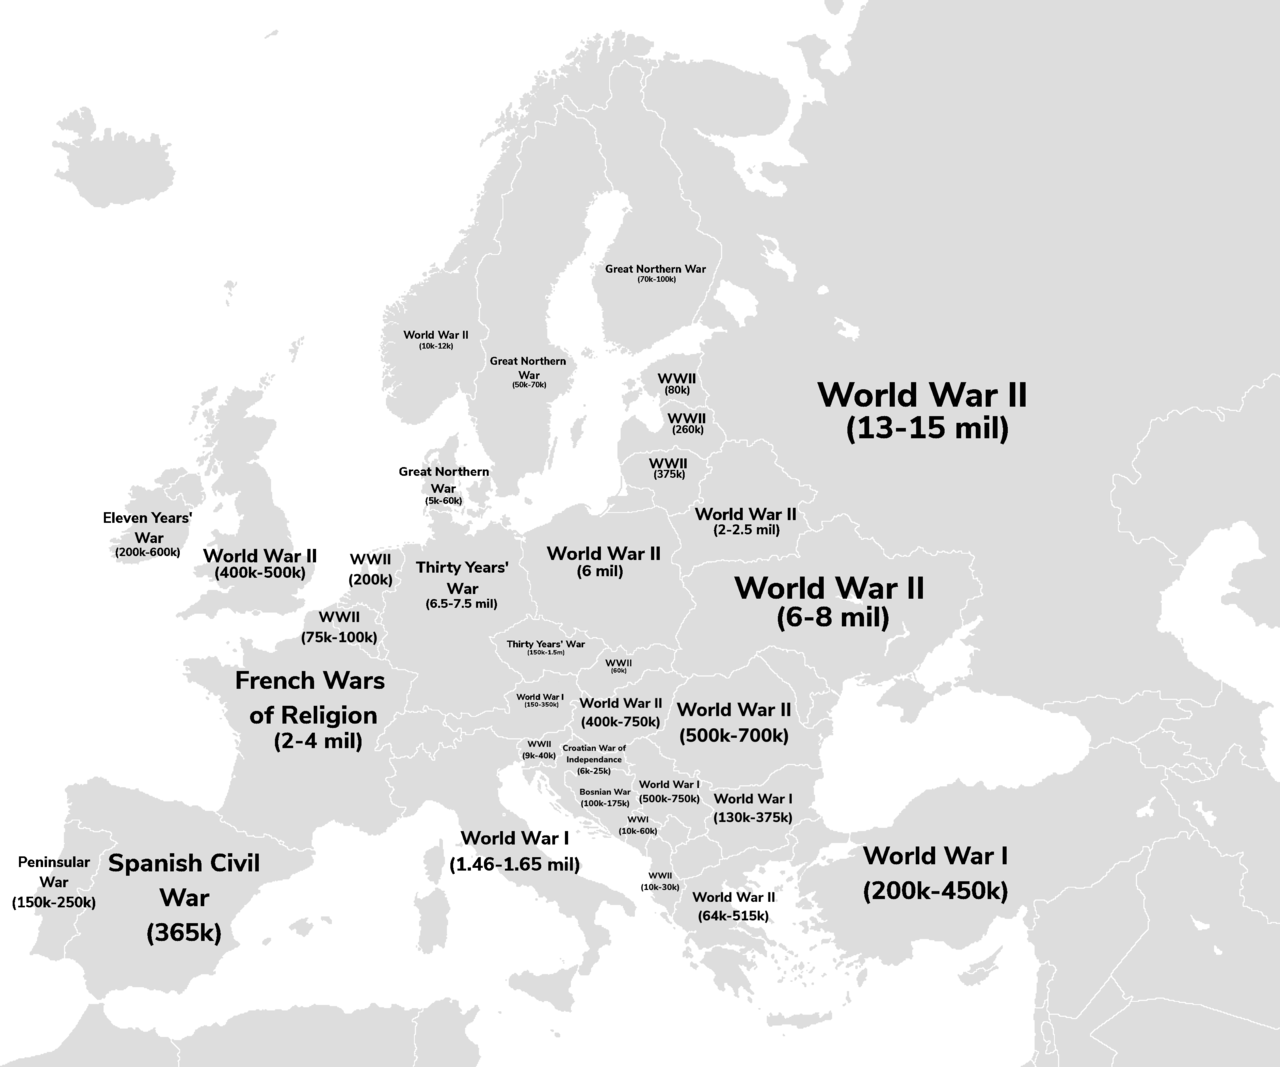 Bloodiest War in Each European Country by Death Toll